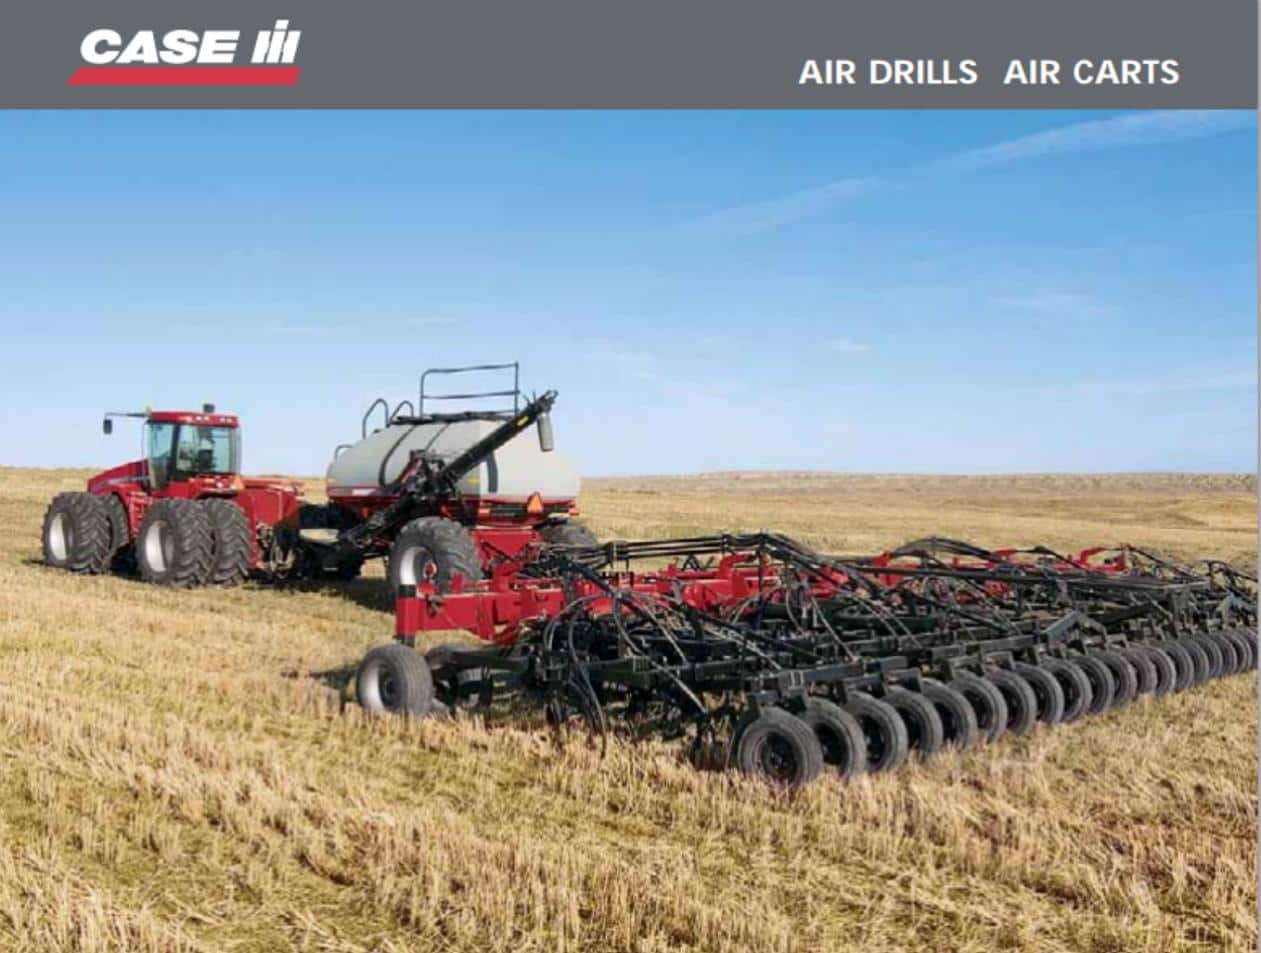 Air Drills and Air Carts Brochure